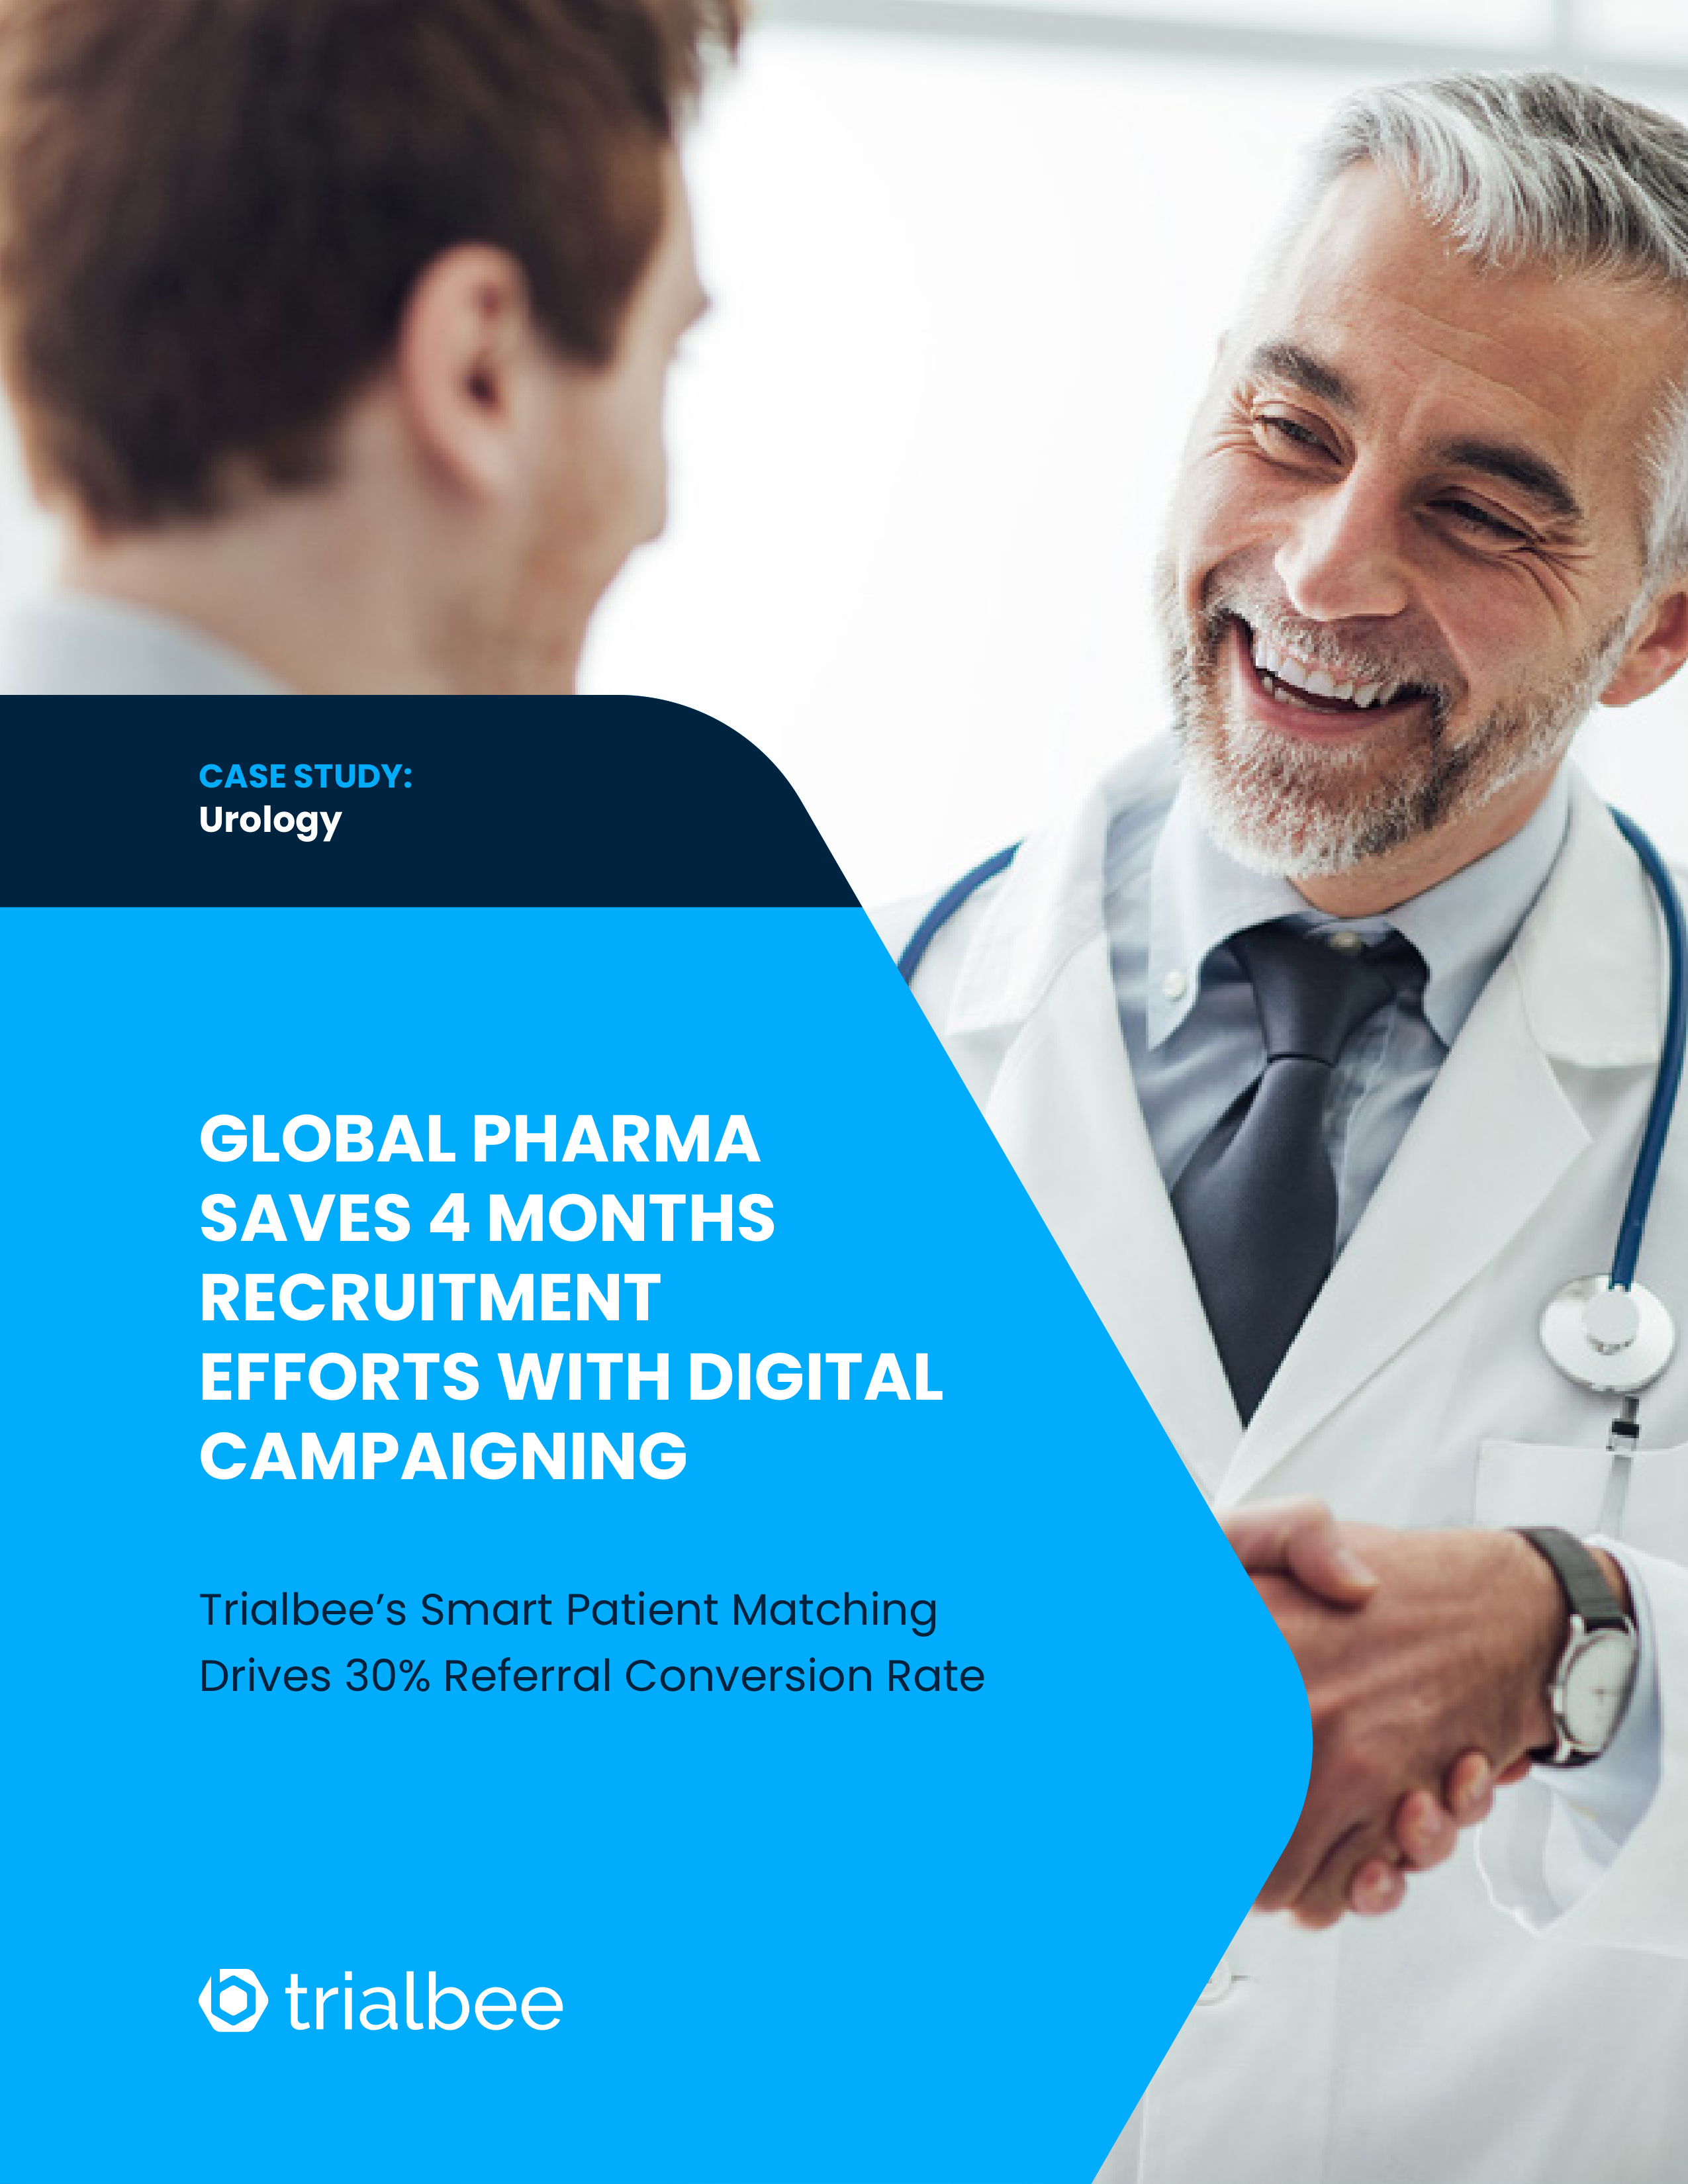 Global Pharma Saves 4 Months Recruitment Efforts with Digital Campaigning